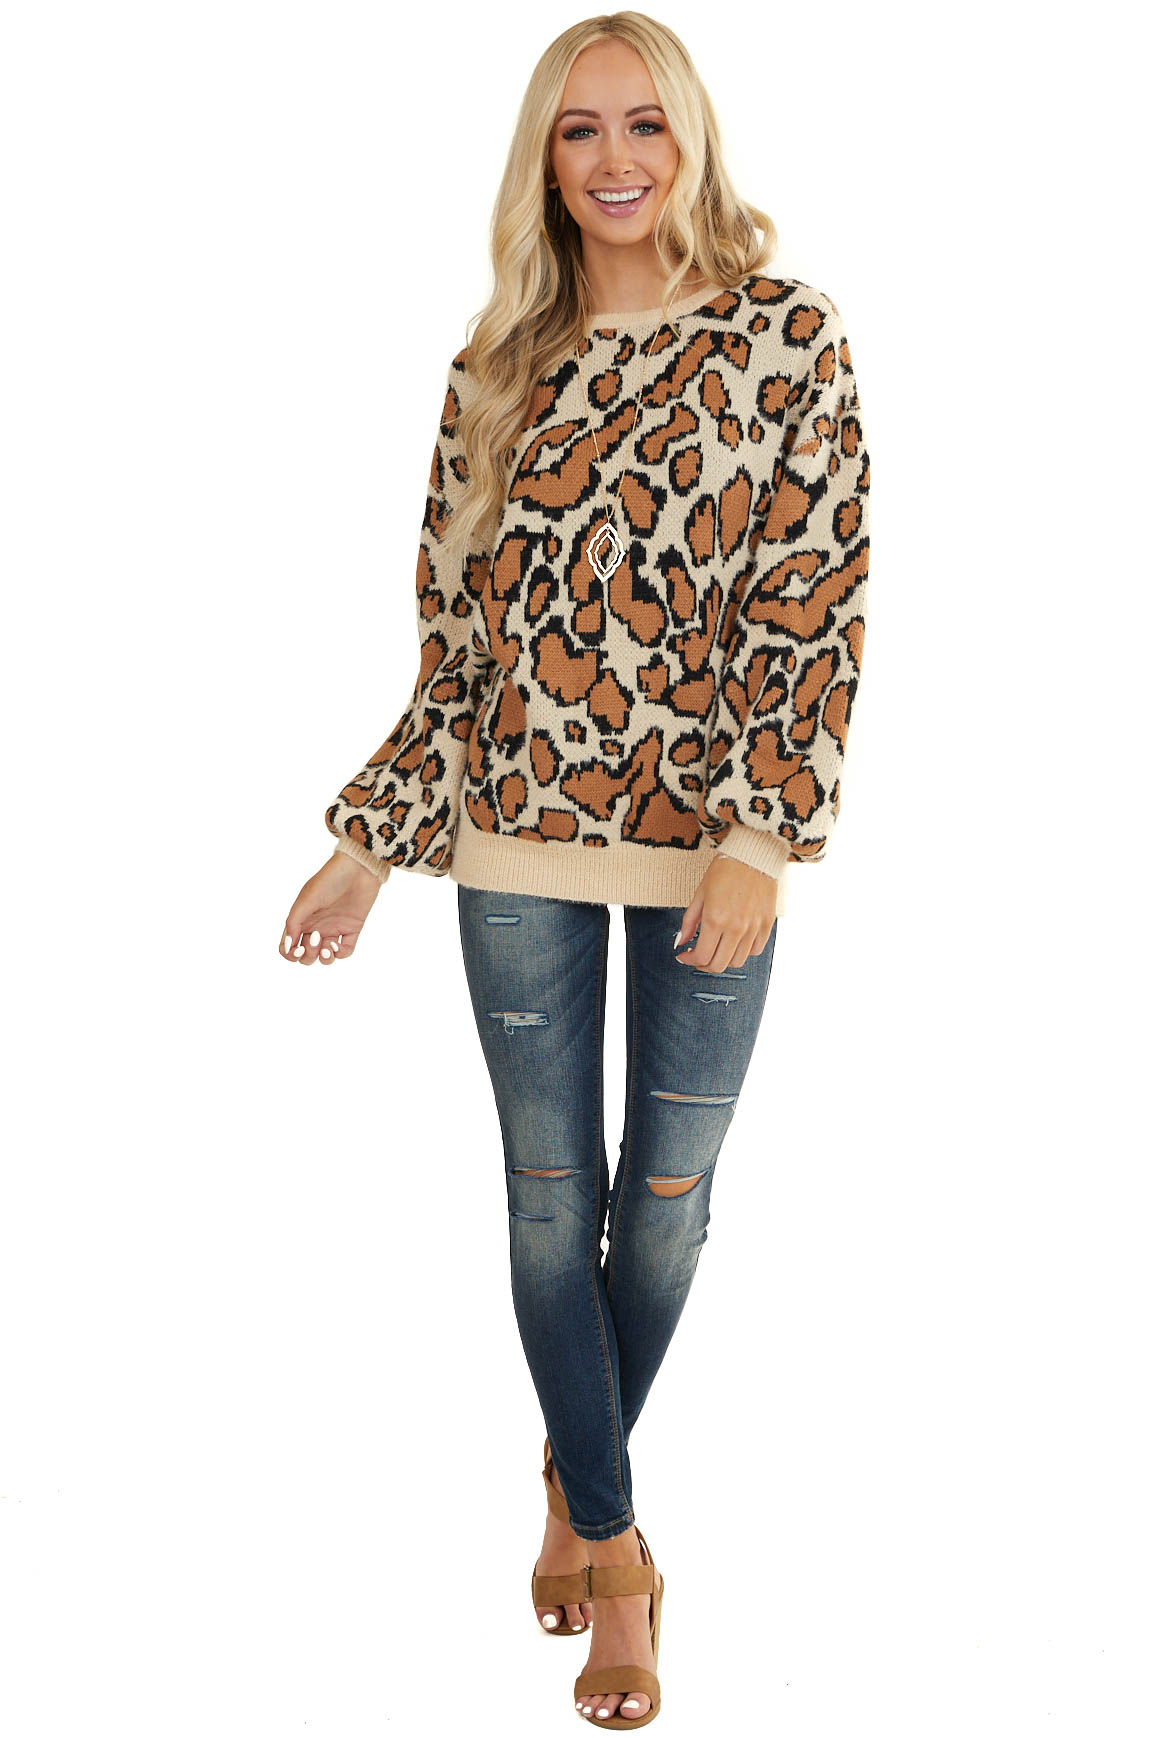 Oatmeal Leopard Print Sweater with Long Bubble Sleeves